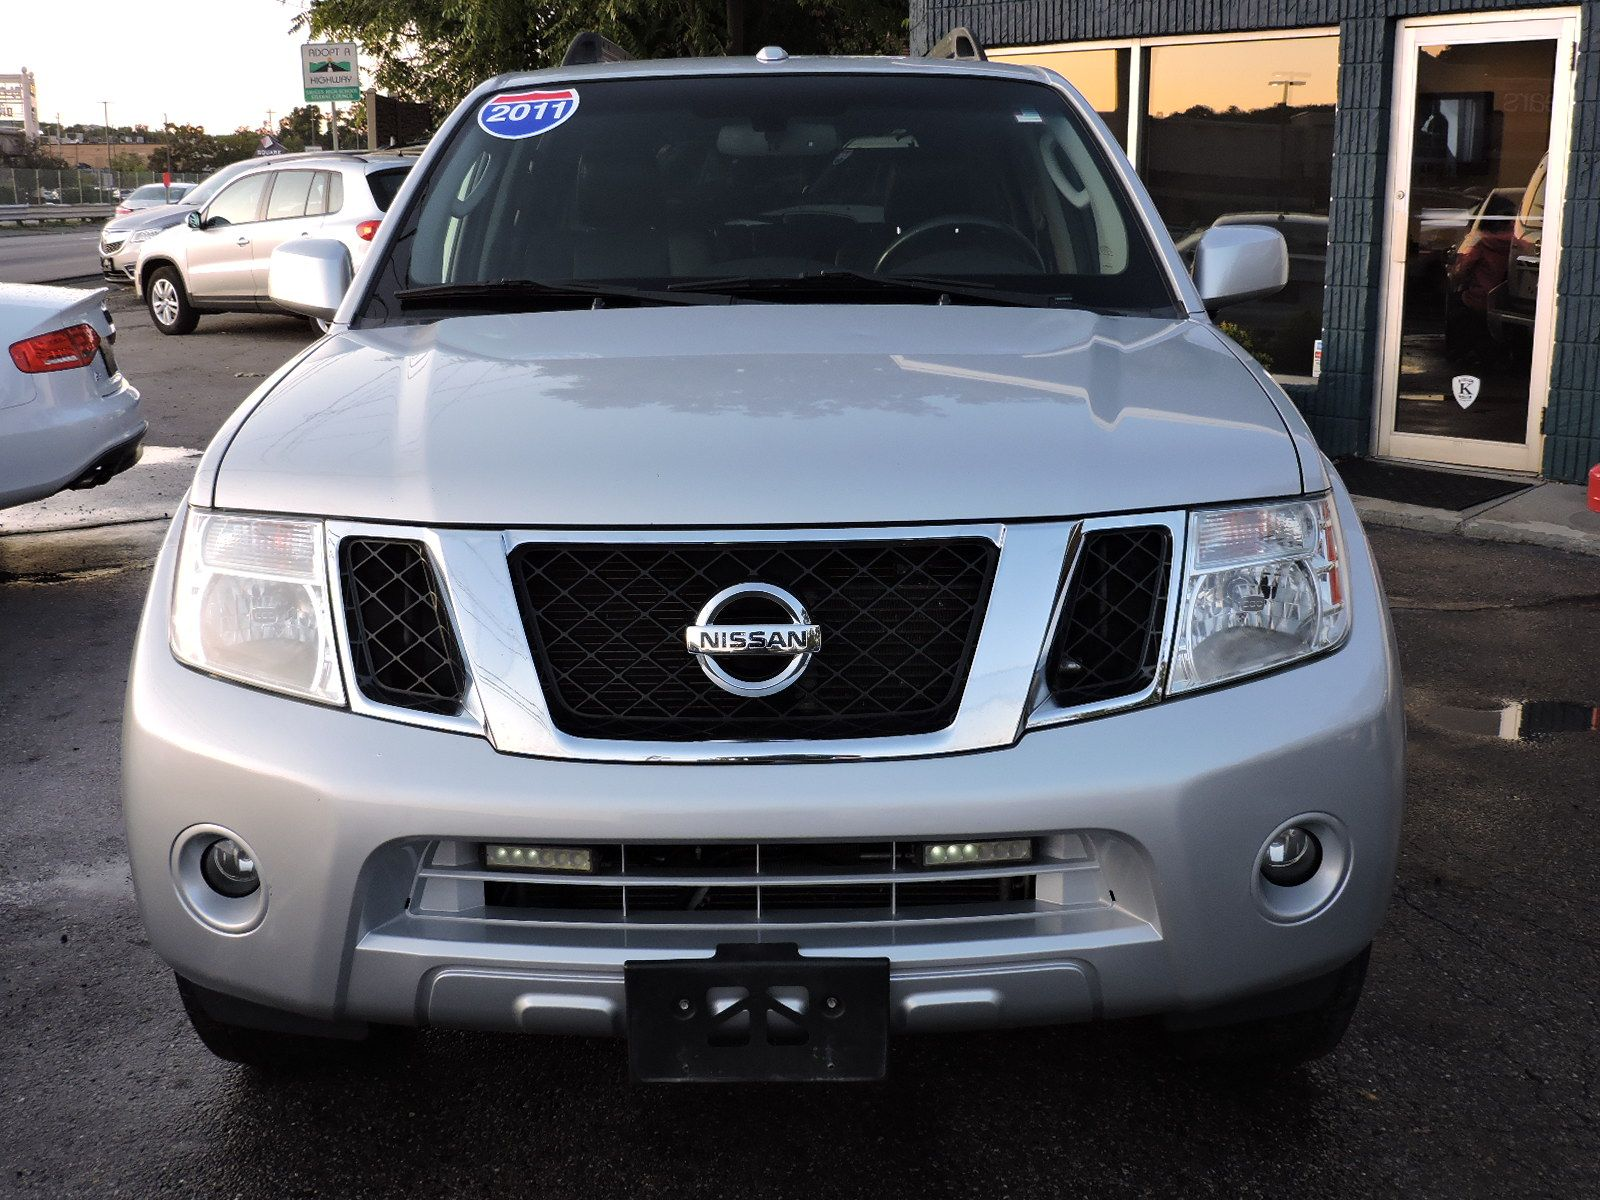 2011 Nissan Pathfinder LE Silver Package AWD